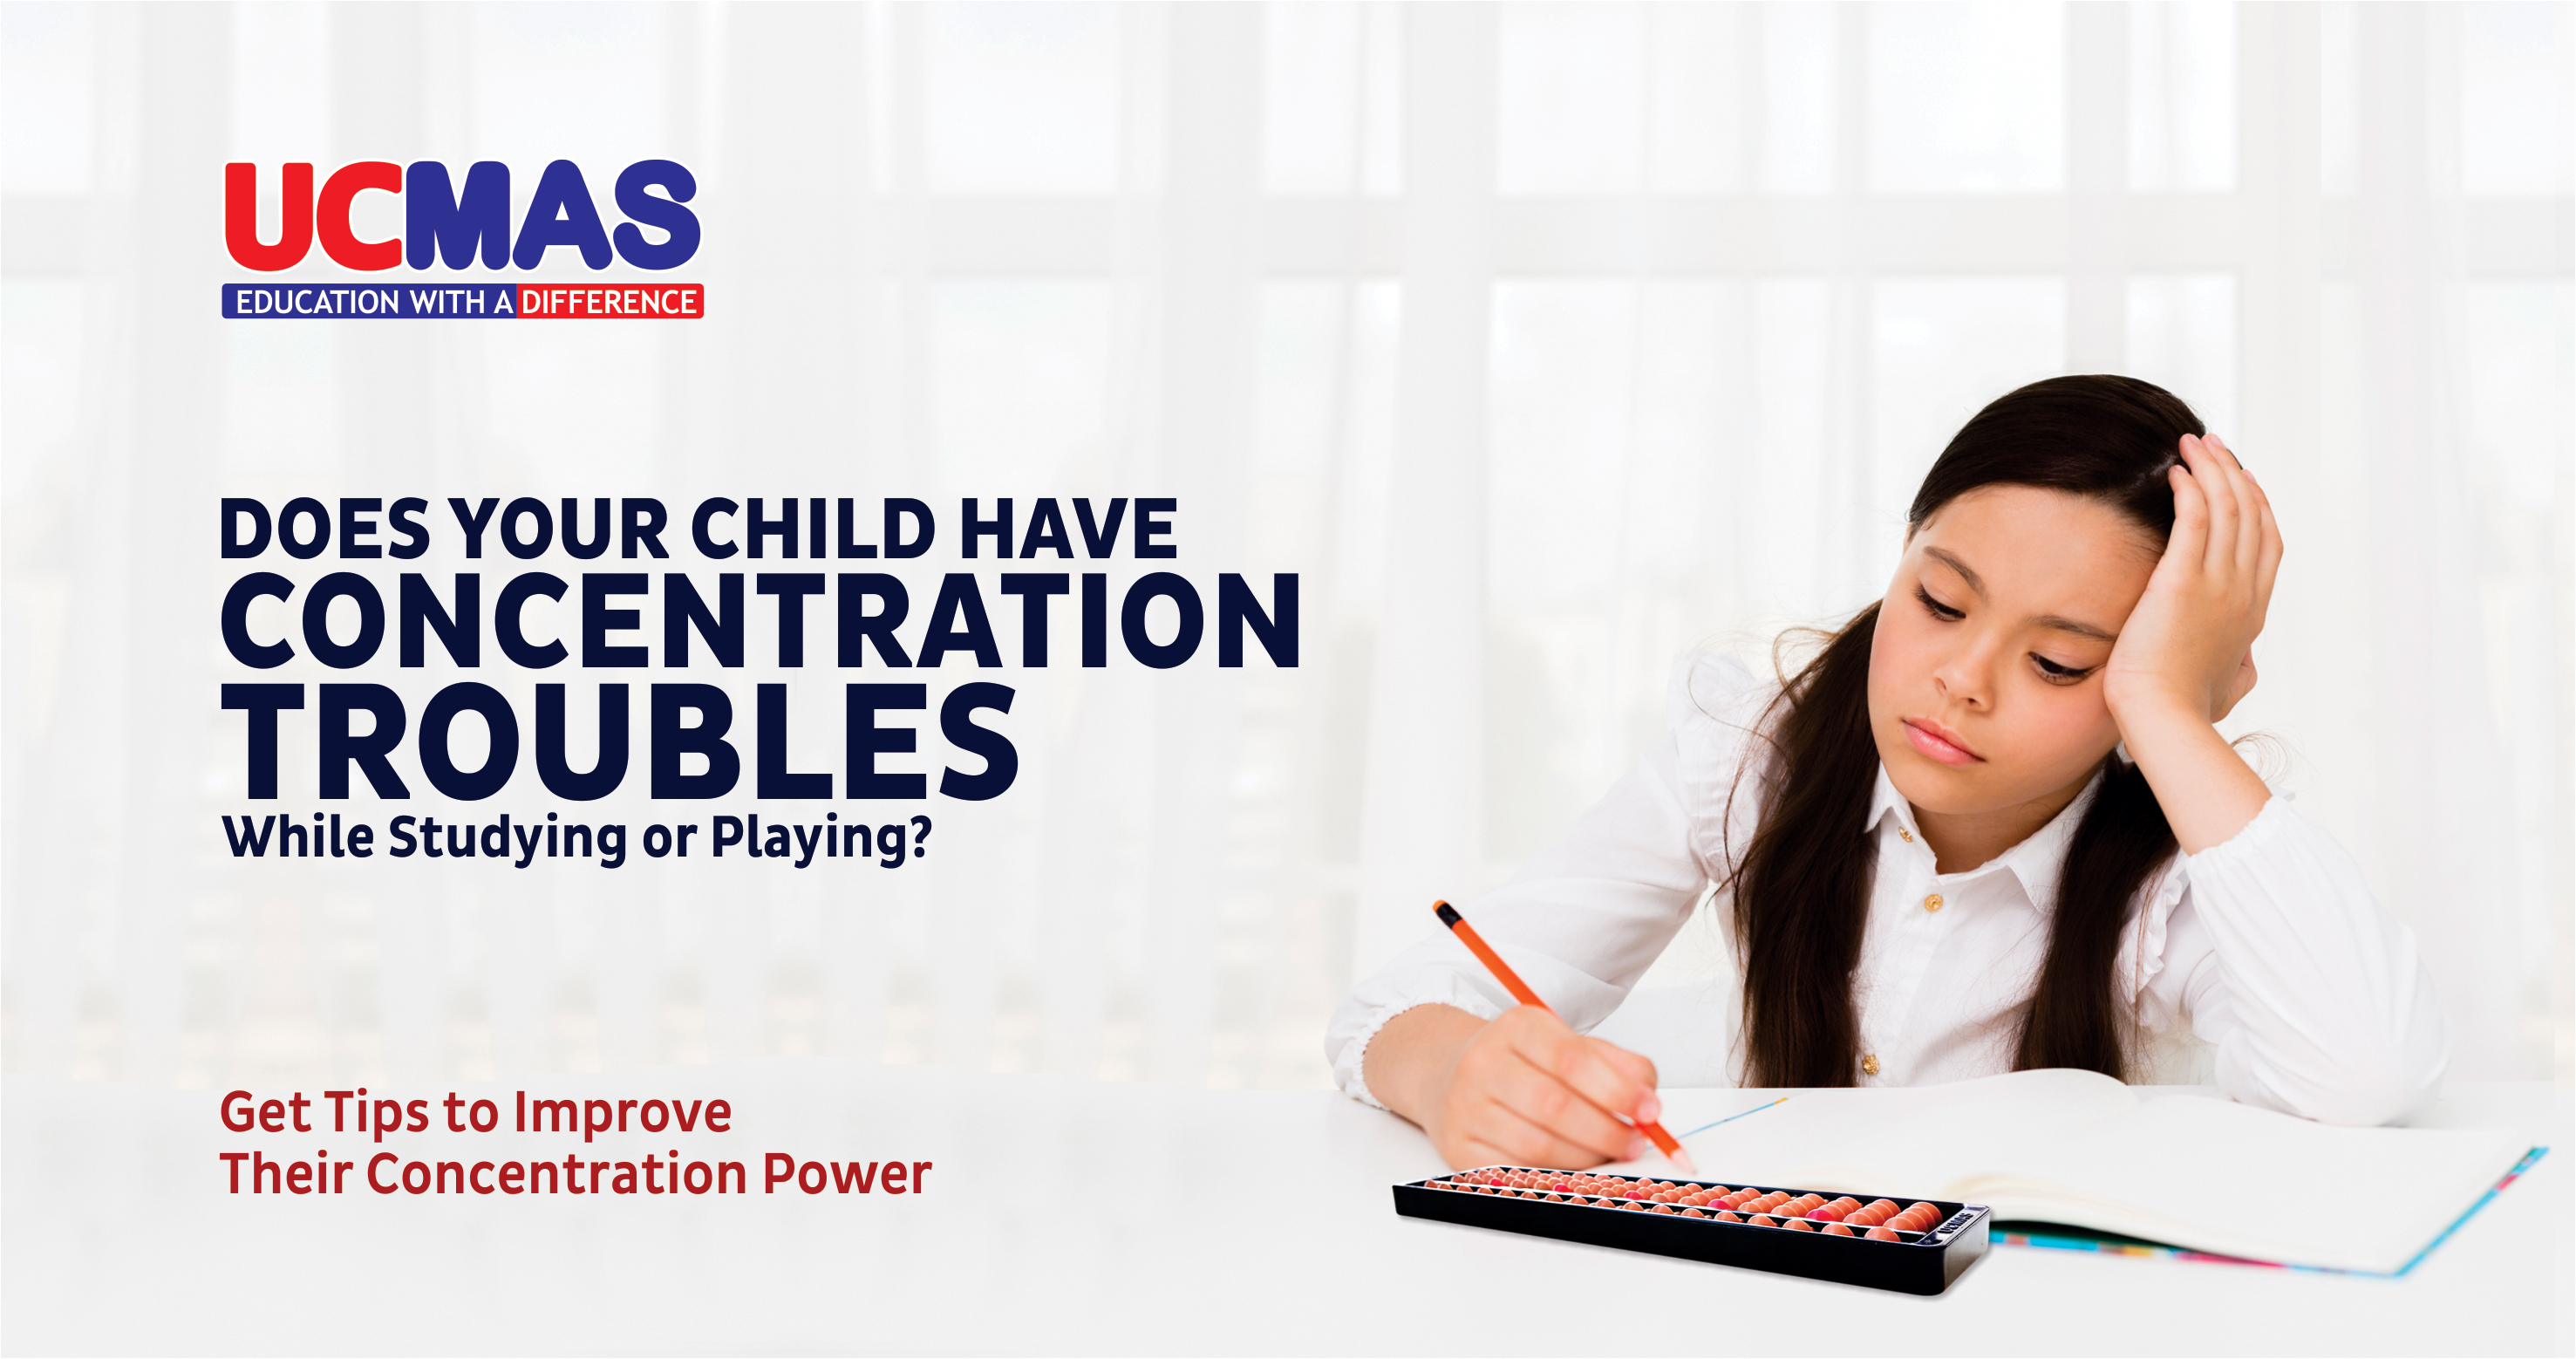 Explore different ways including Abacus for kids to develop your child's concentration power. Blog by UCMAS India Child Development Program.